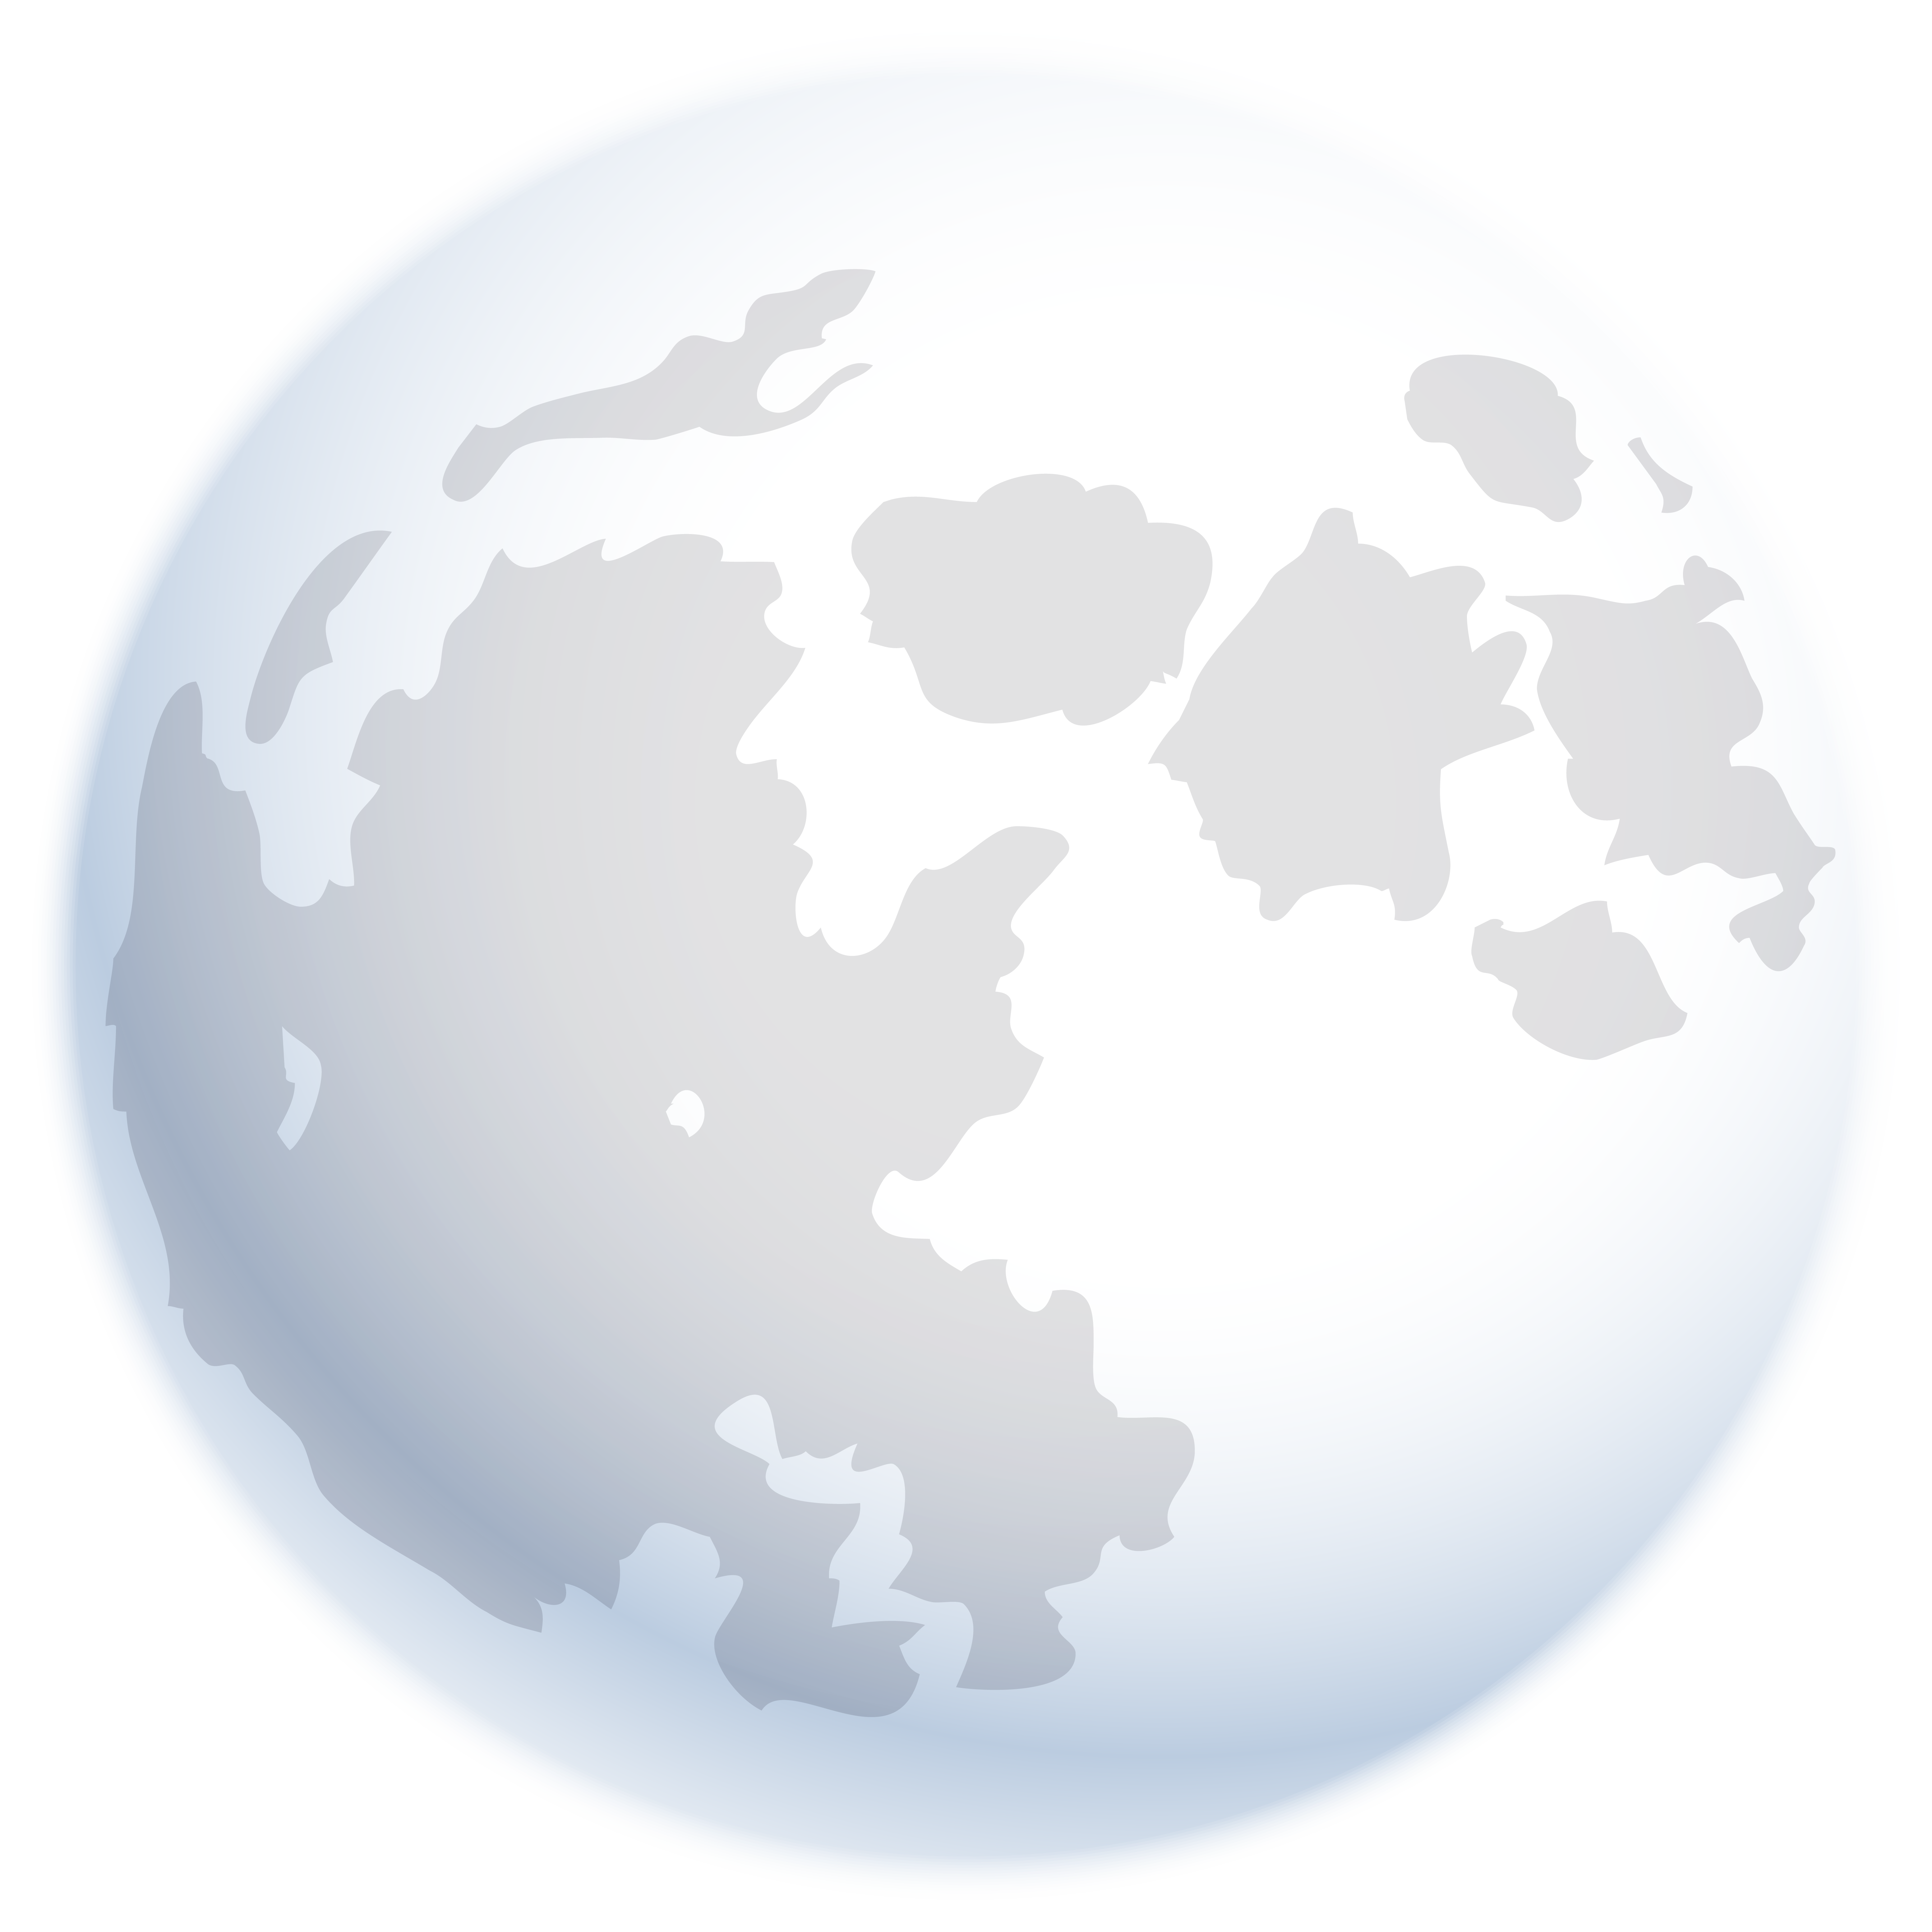 Moon art png. Realistic clipart image gallery